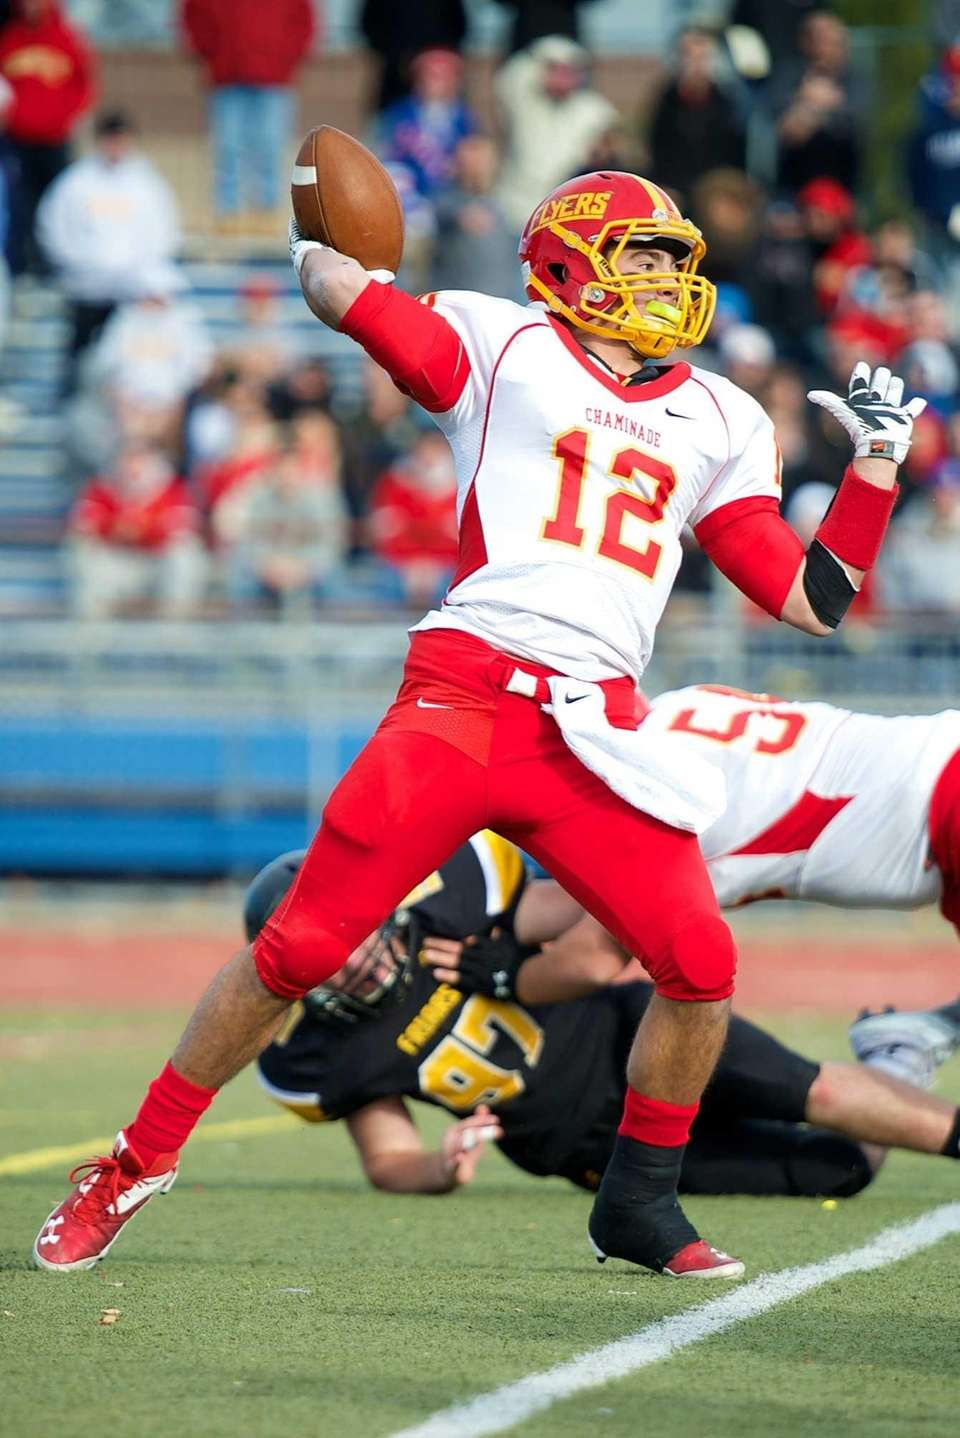 Chaminade quarterback Sean Cerrone attempts a pass against